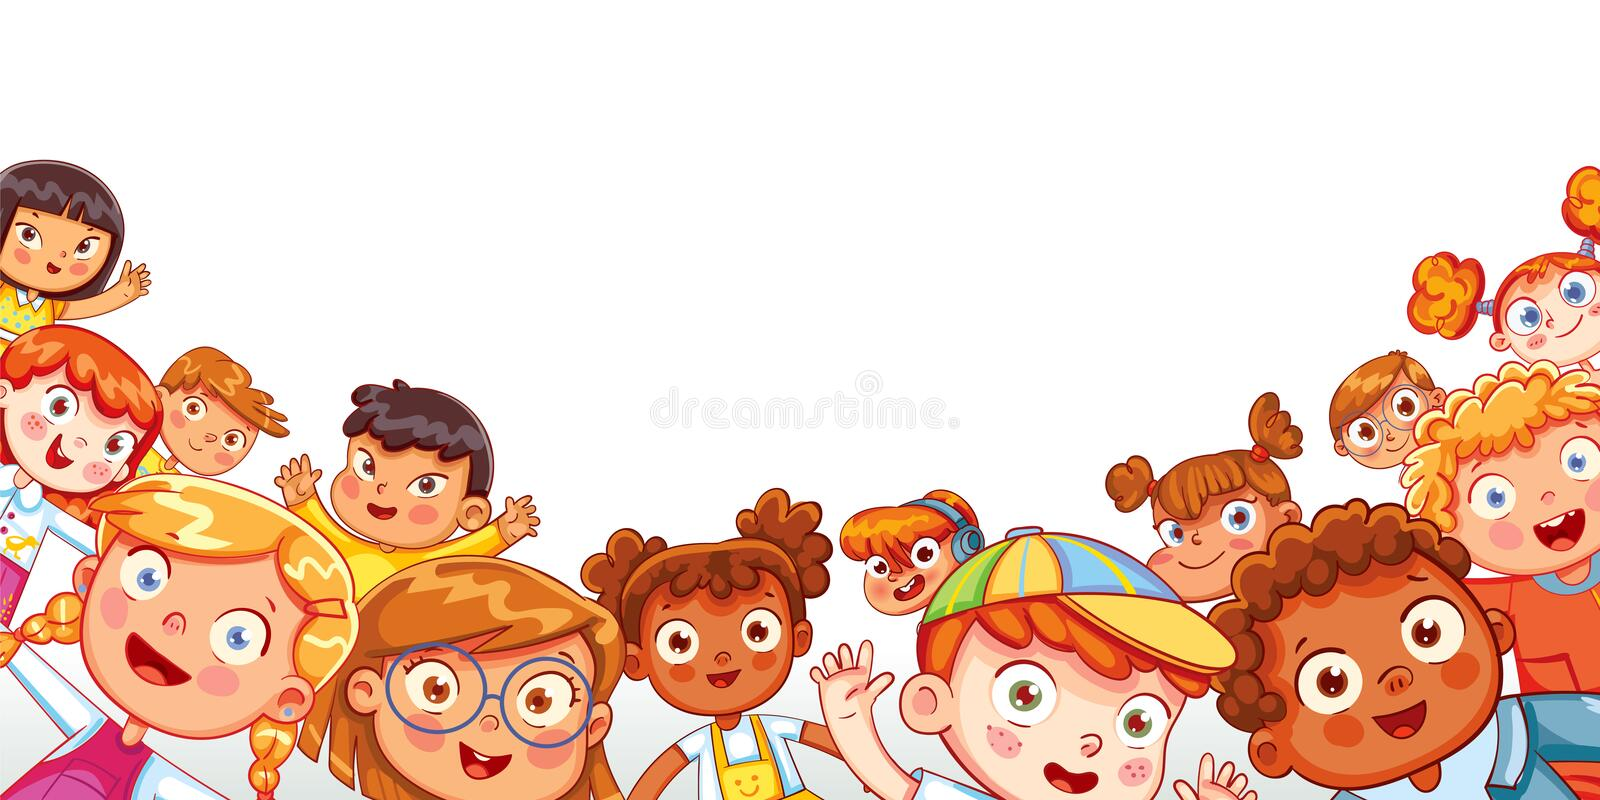 Group of multicultural happy children waving at the camera. Children`s panorama for your design. Place for text. Template for advertising brochure. Funny stock illustration